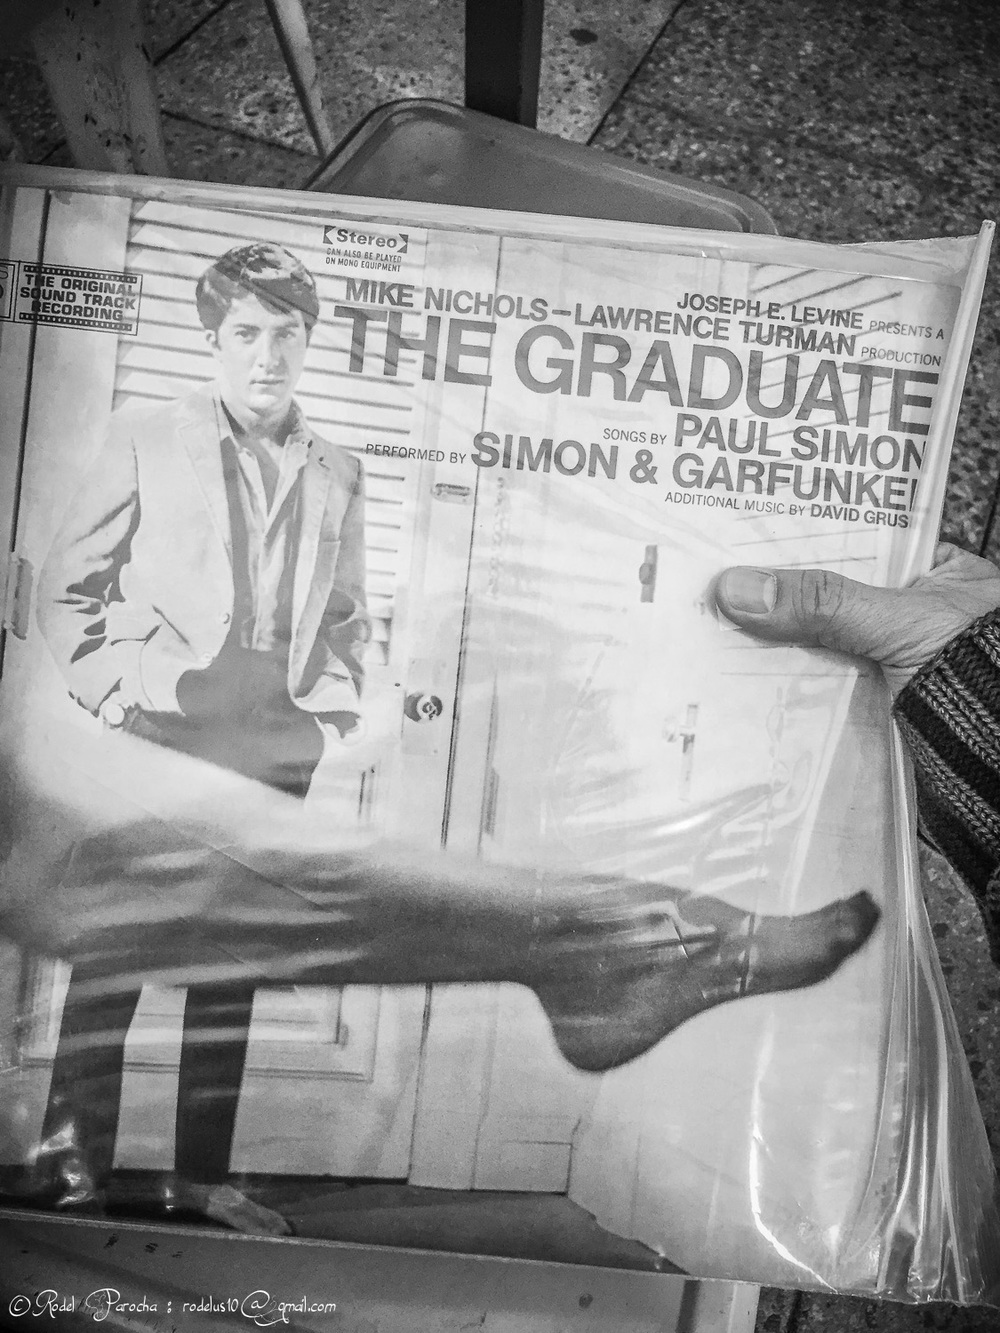 The Graduate soundtrack bought at Rosemount Vinyl Fare.